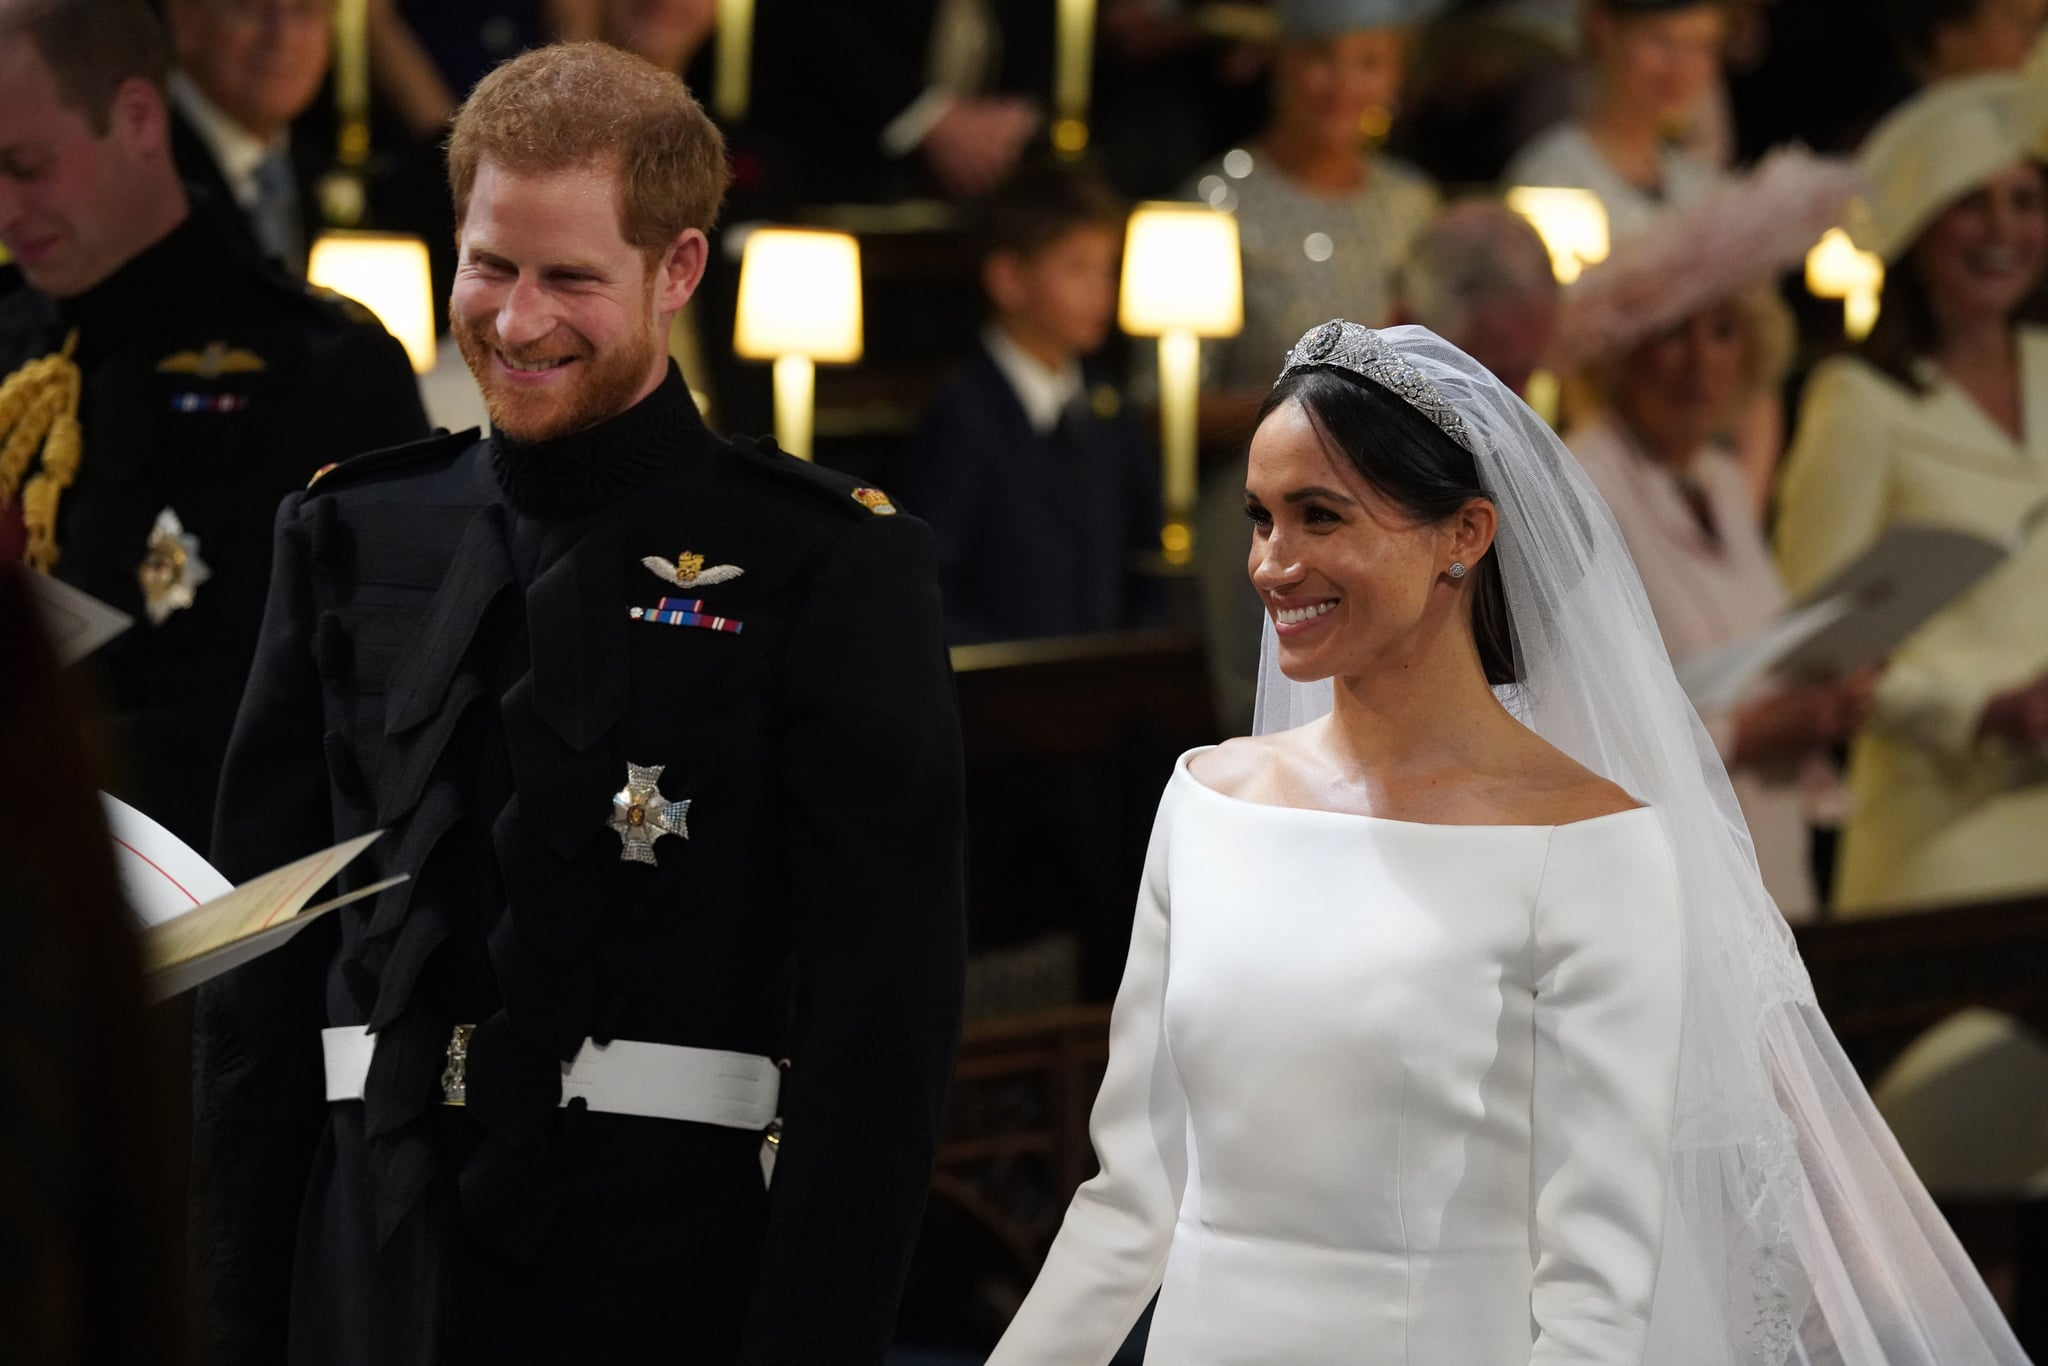 Britain's Prince Harry, Duke of Sussex, (L) and US fiancee of Britain's Prince Harry Meghan Markle arrive at the High Altar for their wedding ceremony in St George's Chapel, Windsor Castle, in Windsor, on May 19, 2018. (Photo by Jonathan Brady / POOL / AFP)        (Photo credit should read JONATHAN BRADY/AFP/Getty Images)